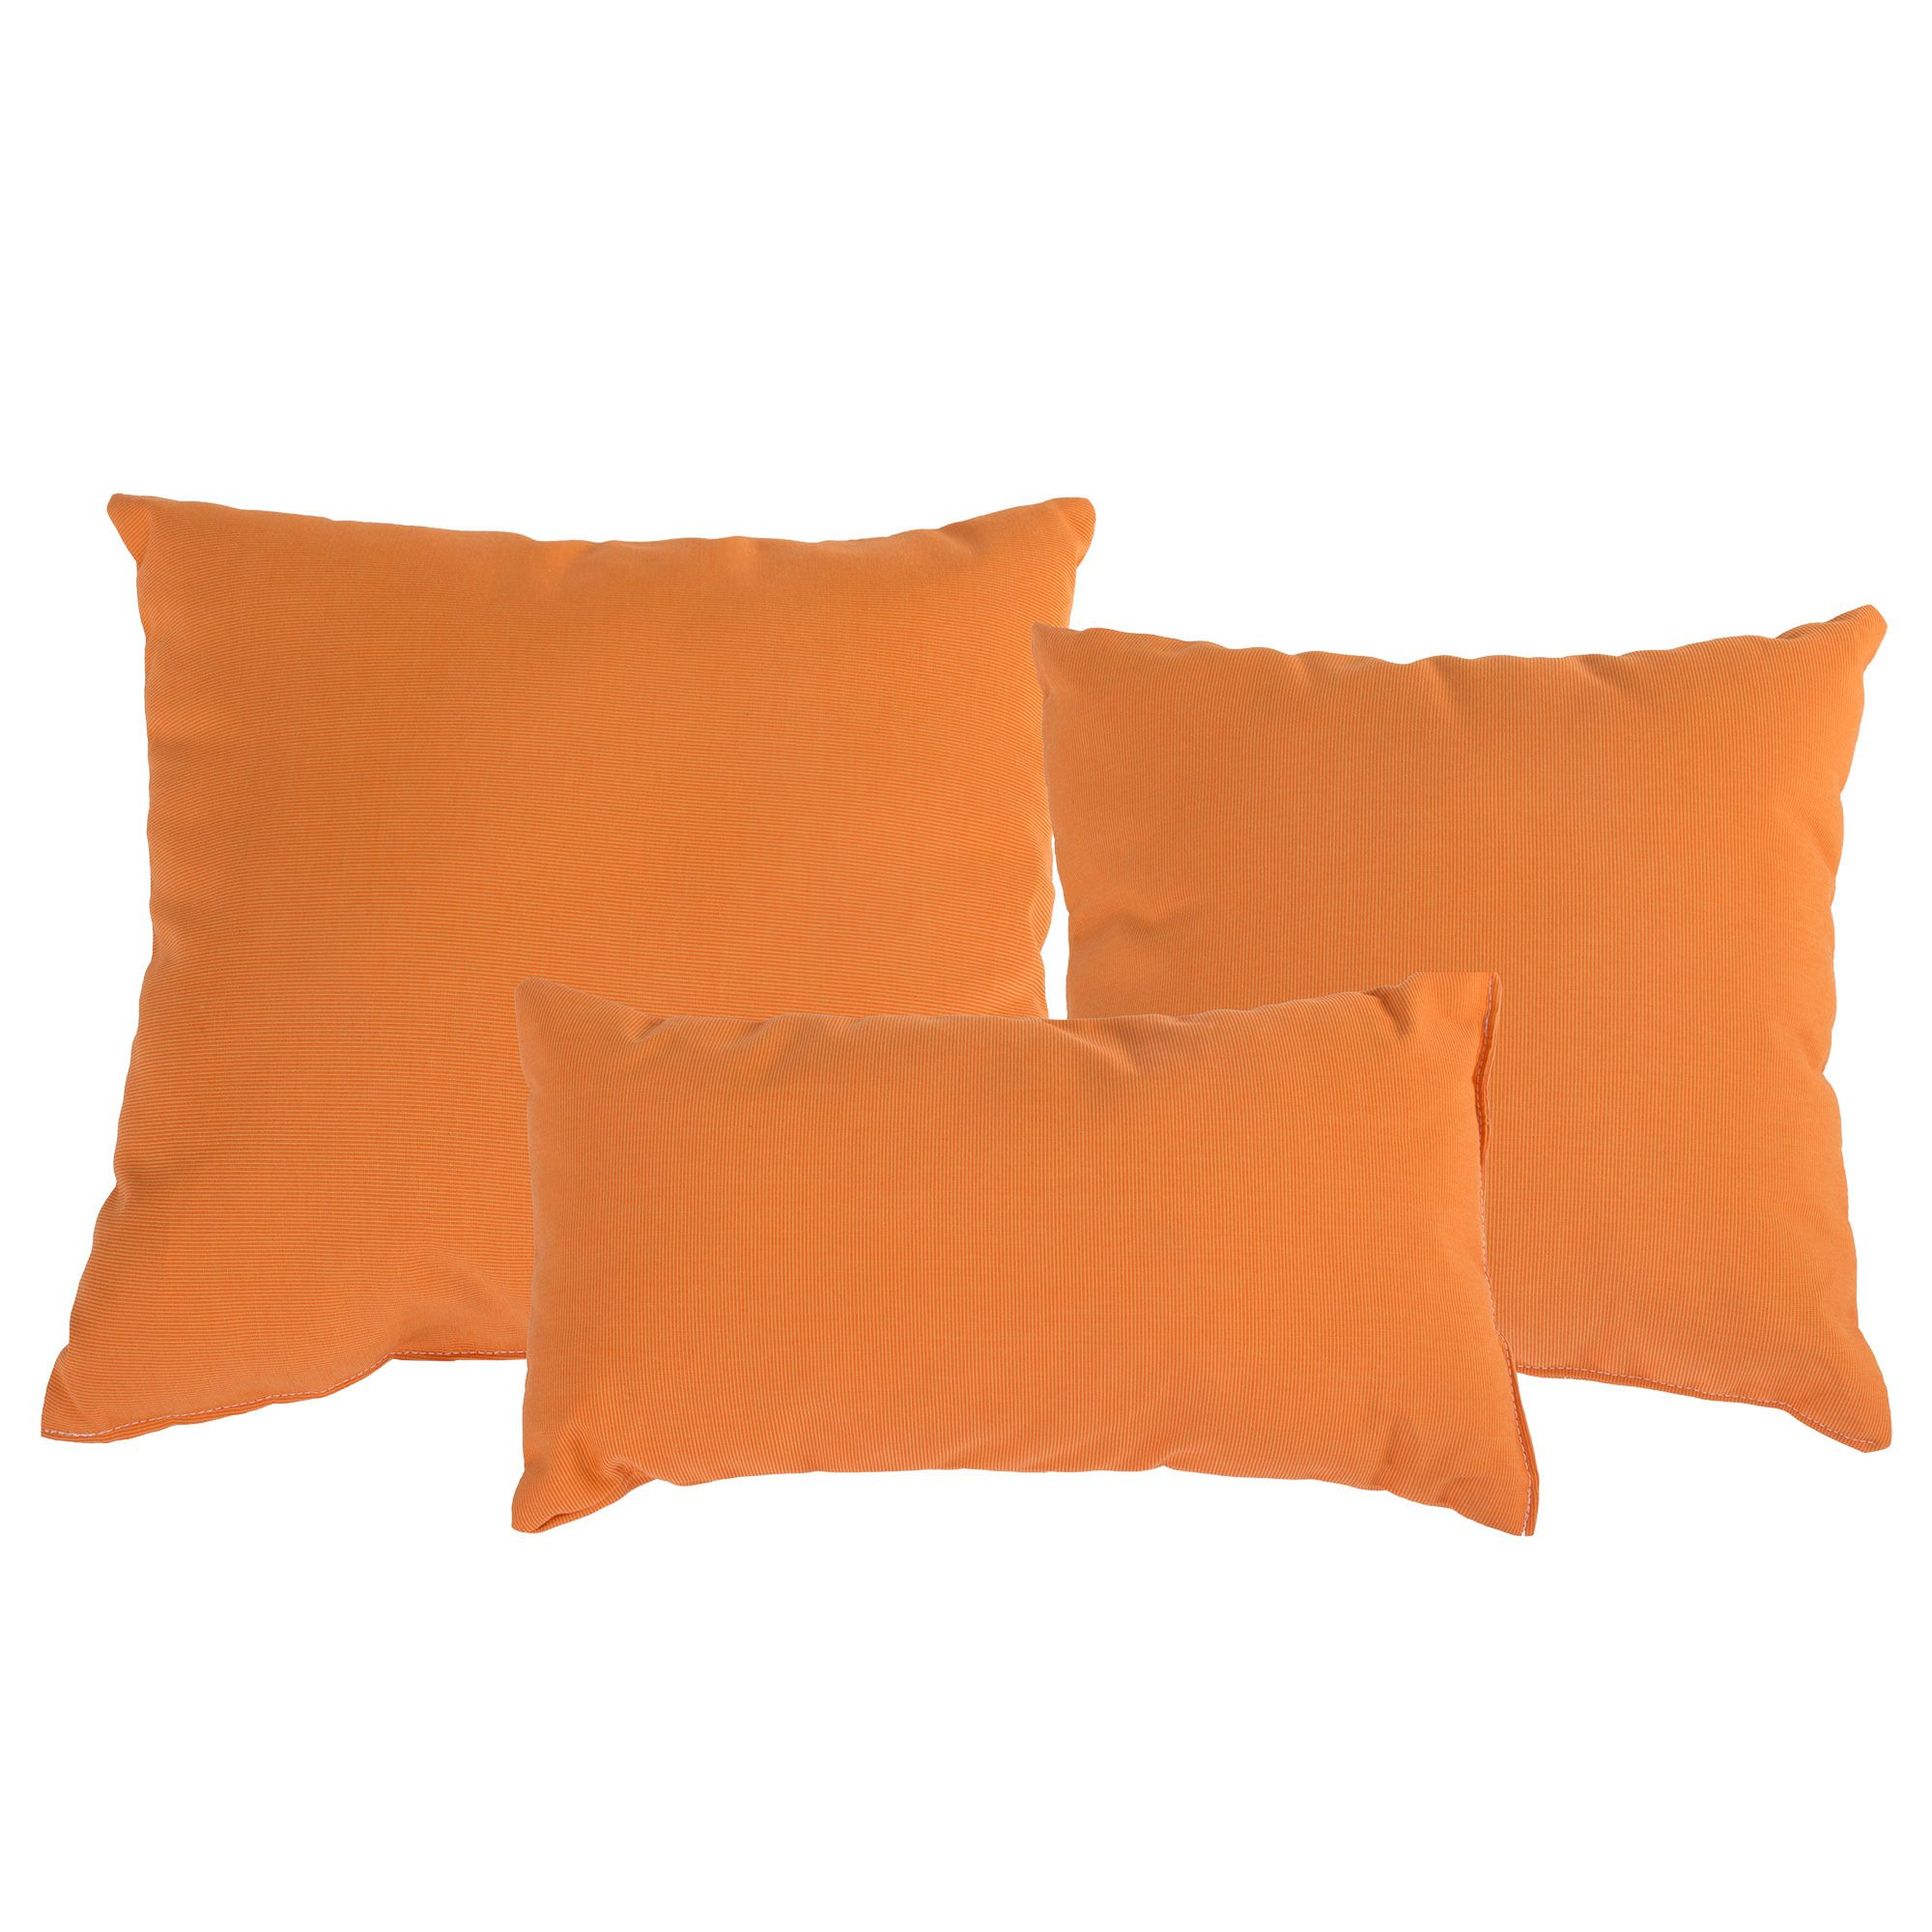 Sunbrella Throw Pillows Clearance : Tangerine Sunbrella Outdoor Throw Pillow DFOHome